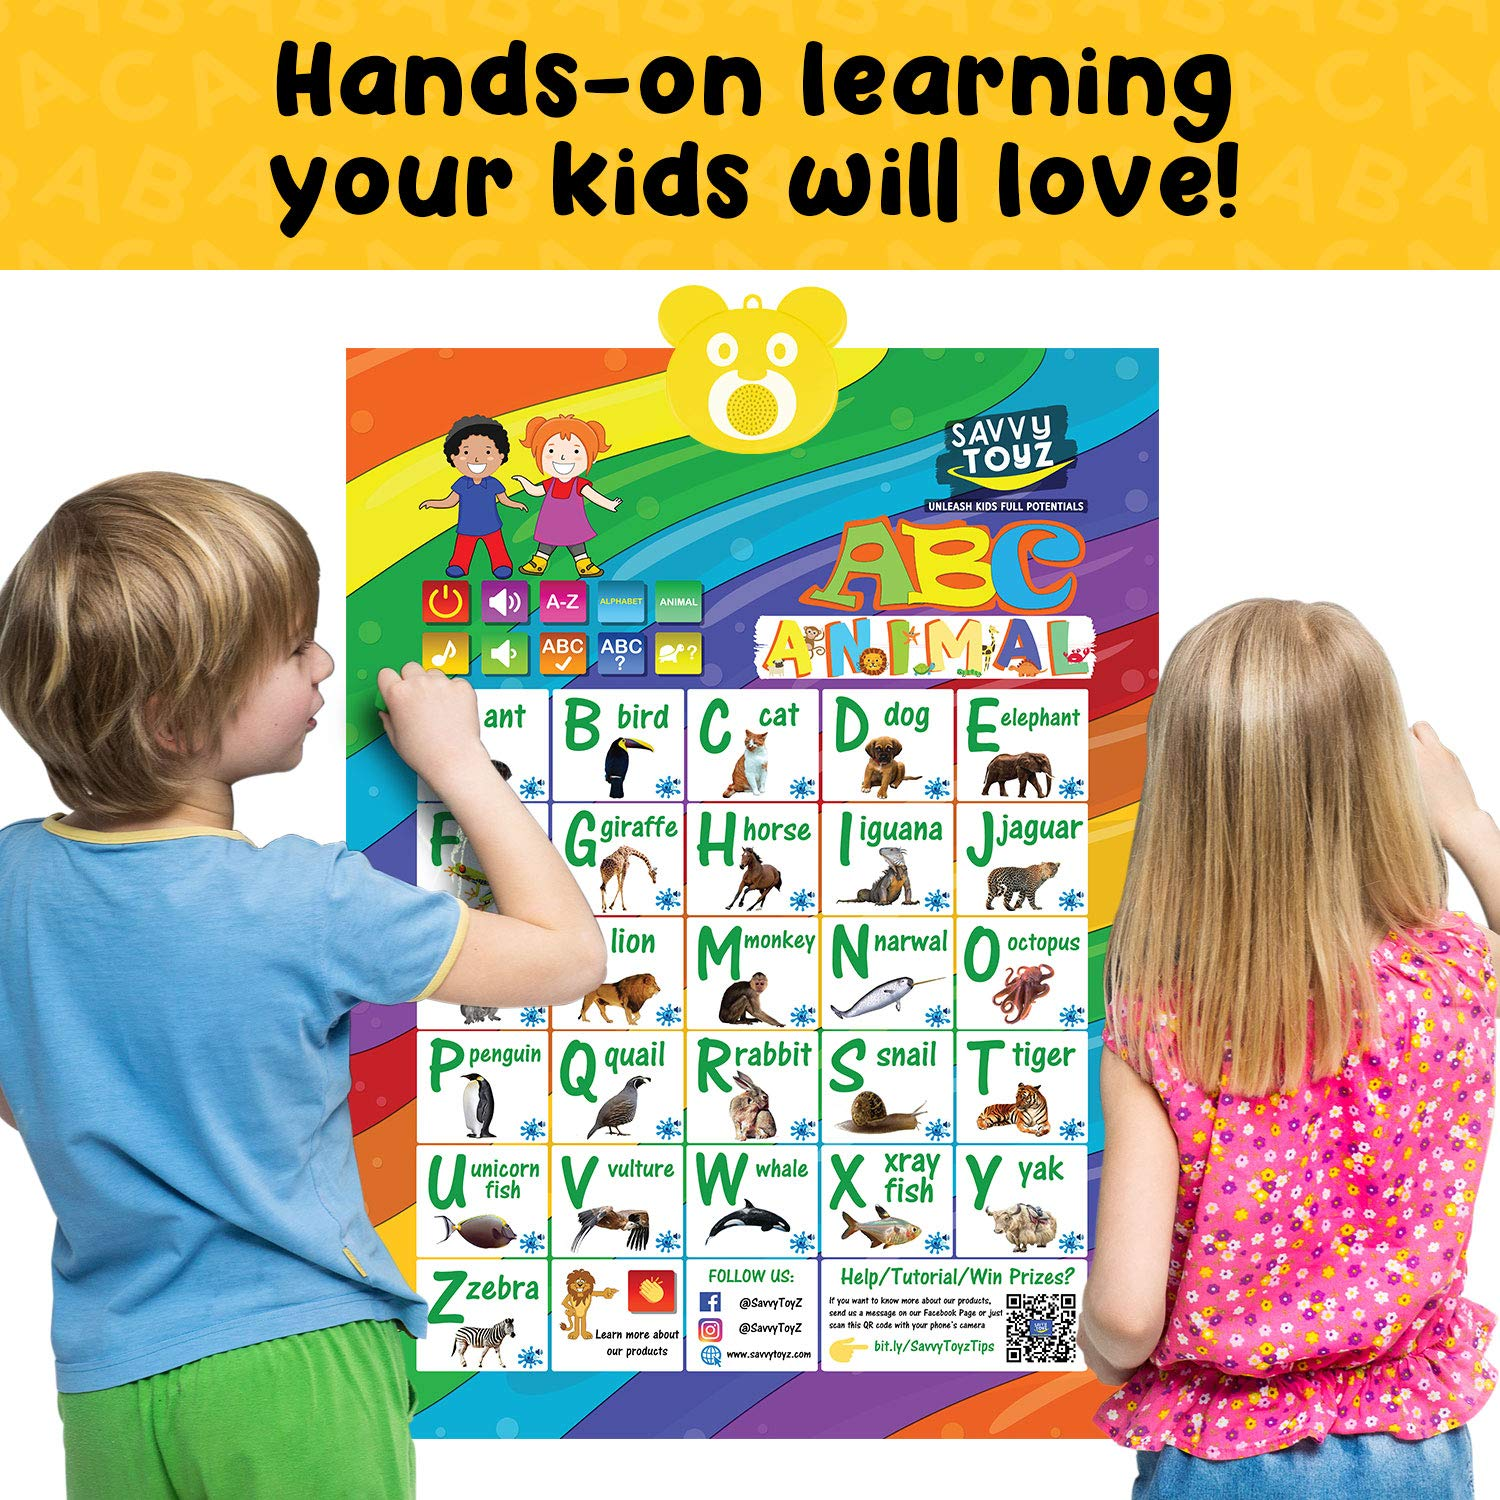 SavvyToyZ Educational Toys for 2-5 Year Olds - Help Your Toddler's Development and Education with Preschool Learning Toys - Fun Talking Interactive Poster for Entertainment and Learning Alphabet by SavvyToyZ (Image #7)